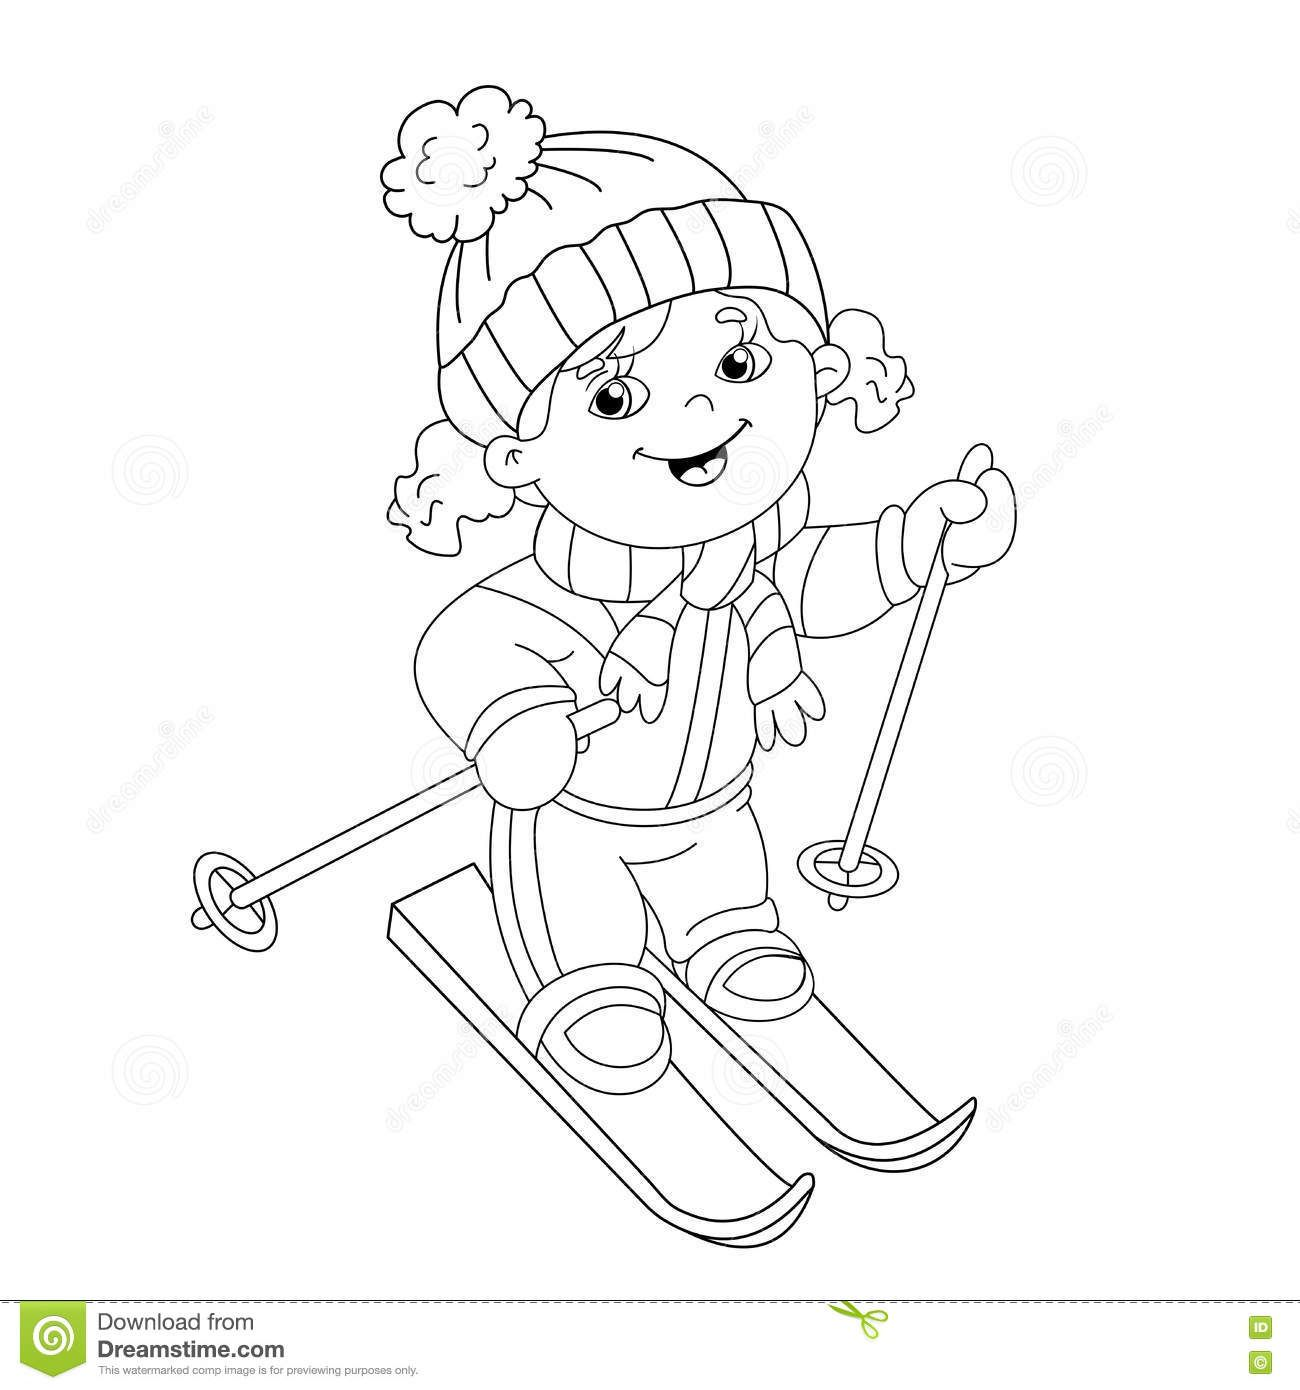 coloring page outline cartoon girl riding skis winter sports book kids 1300 1390. Black Bedroom Furniture Sets. Home Design Ideas